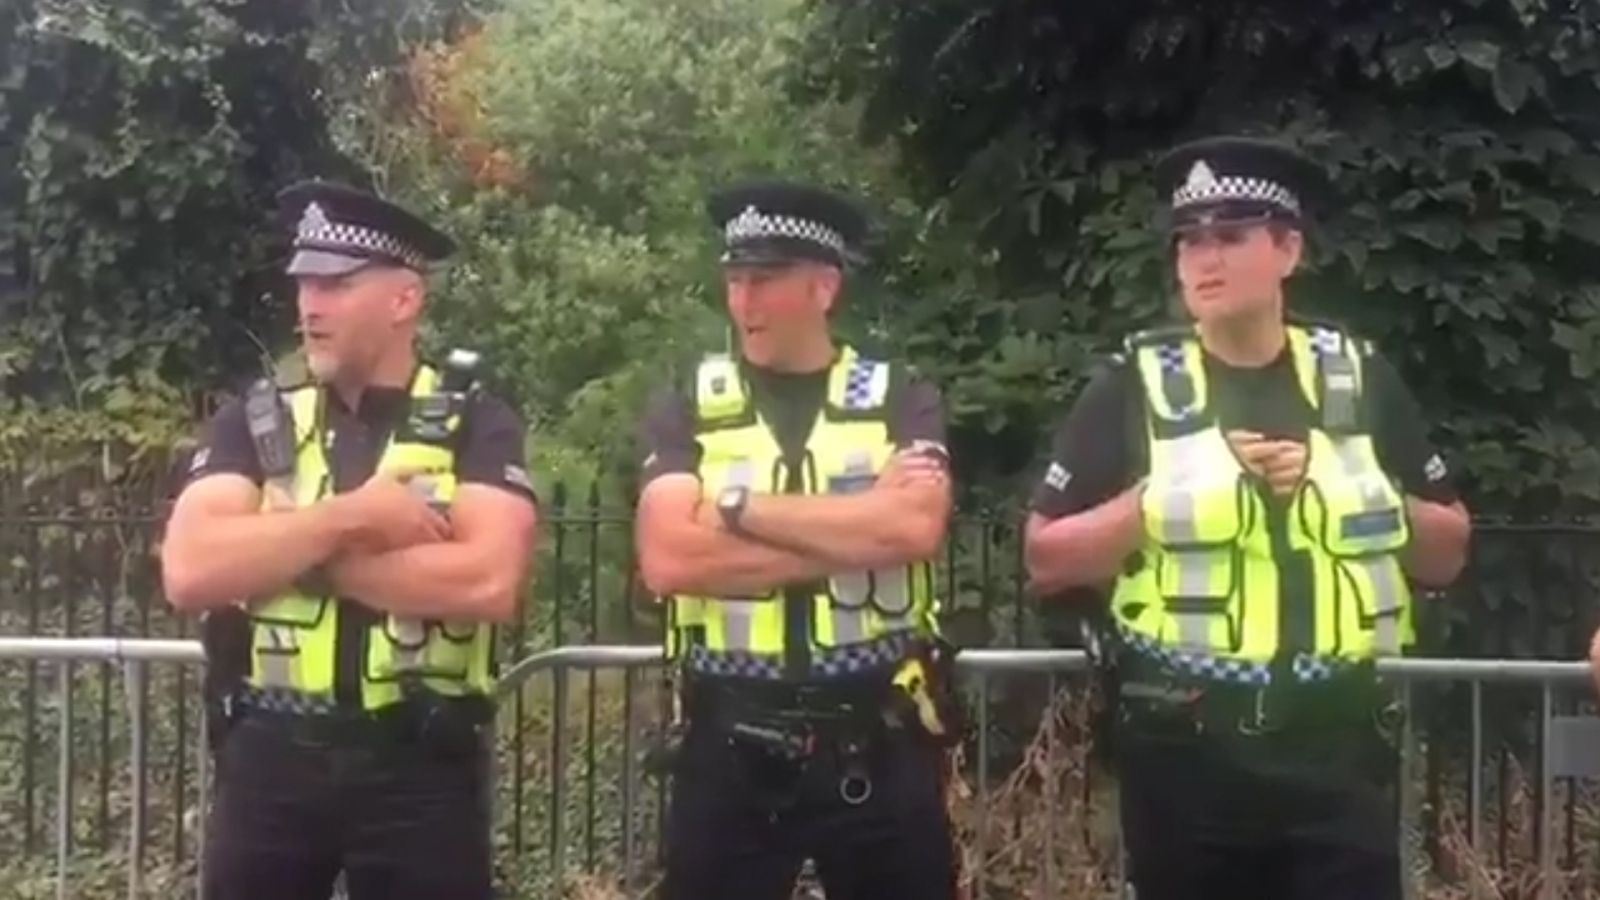 police-greet-glastonbury-revellers-by-forming-choir-and-singing-delilah